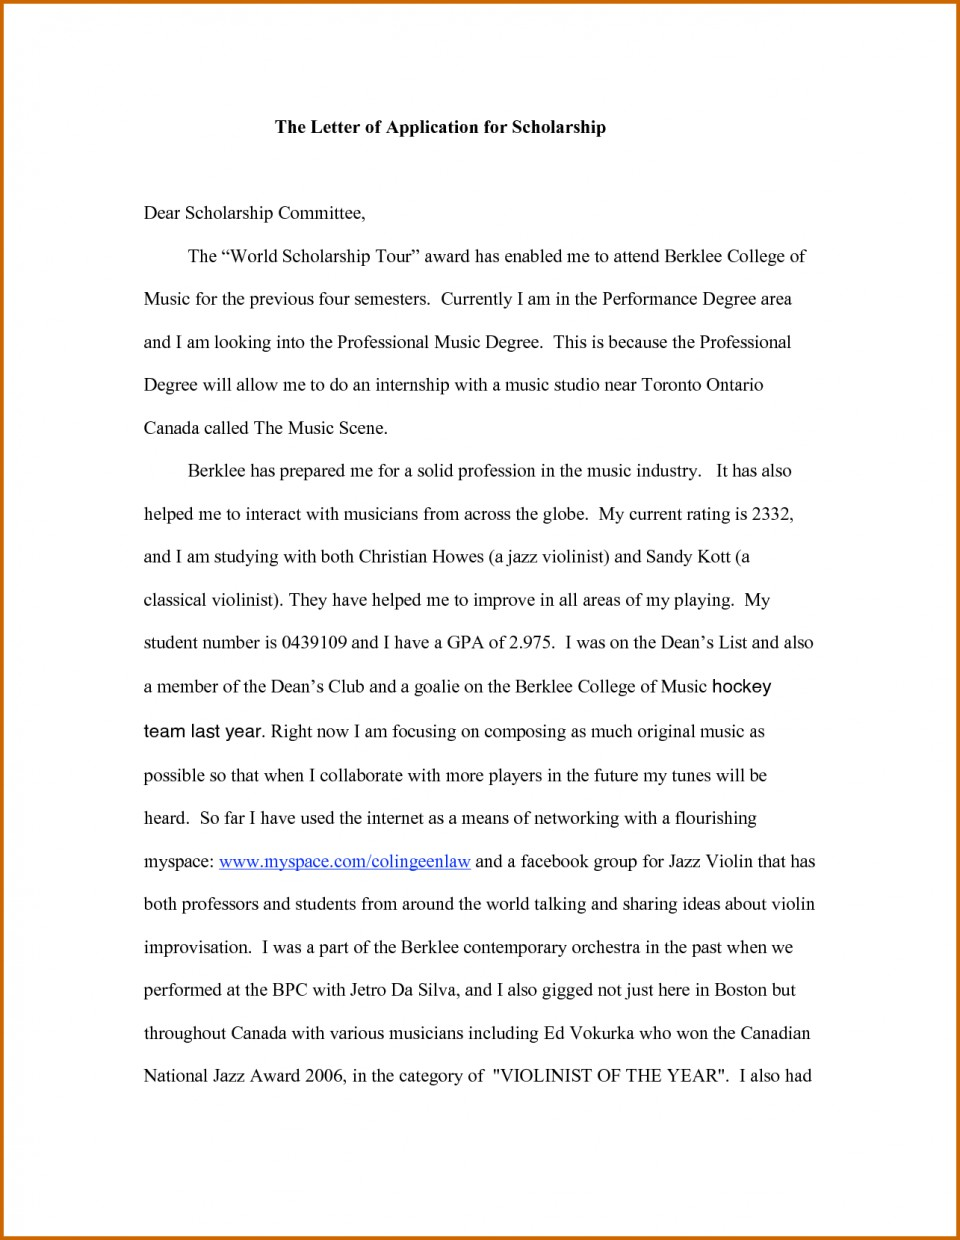 009 Essay Example How To Writepplication For Scholarship What Awesome Write A That Stands Out About Your Career Goals Financial Need 960